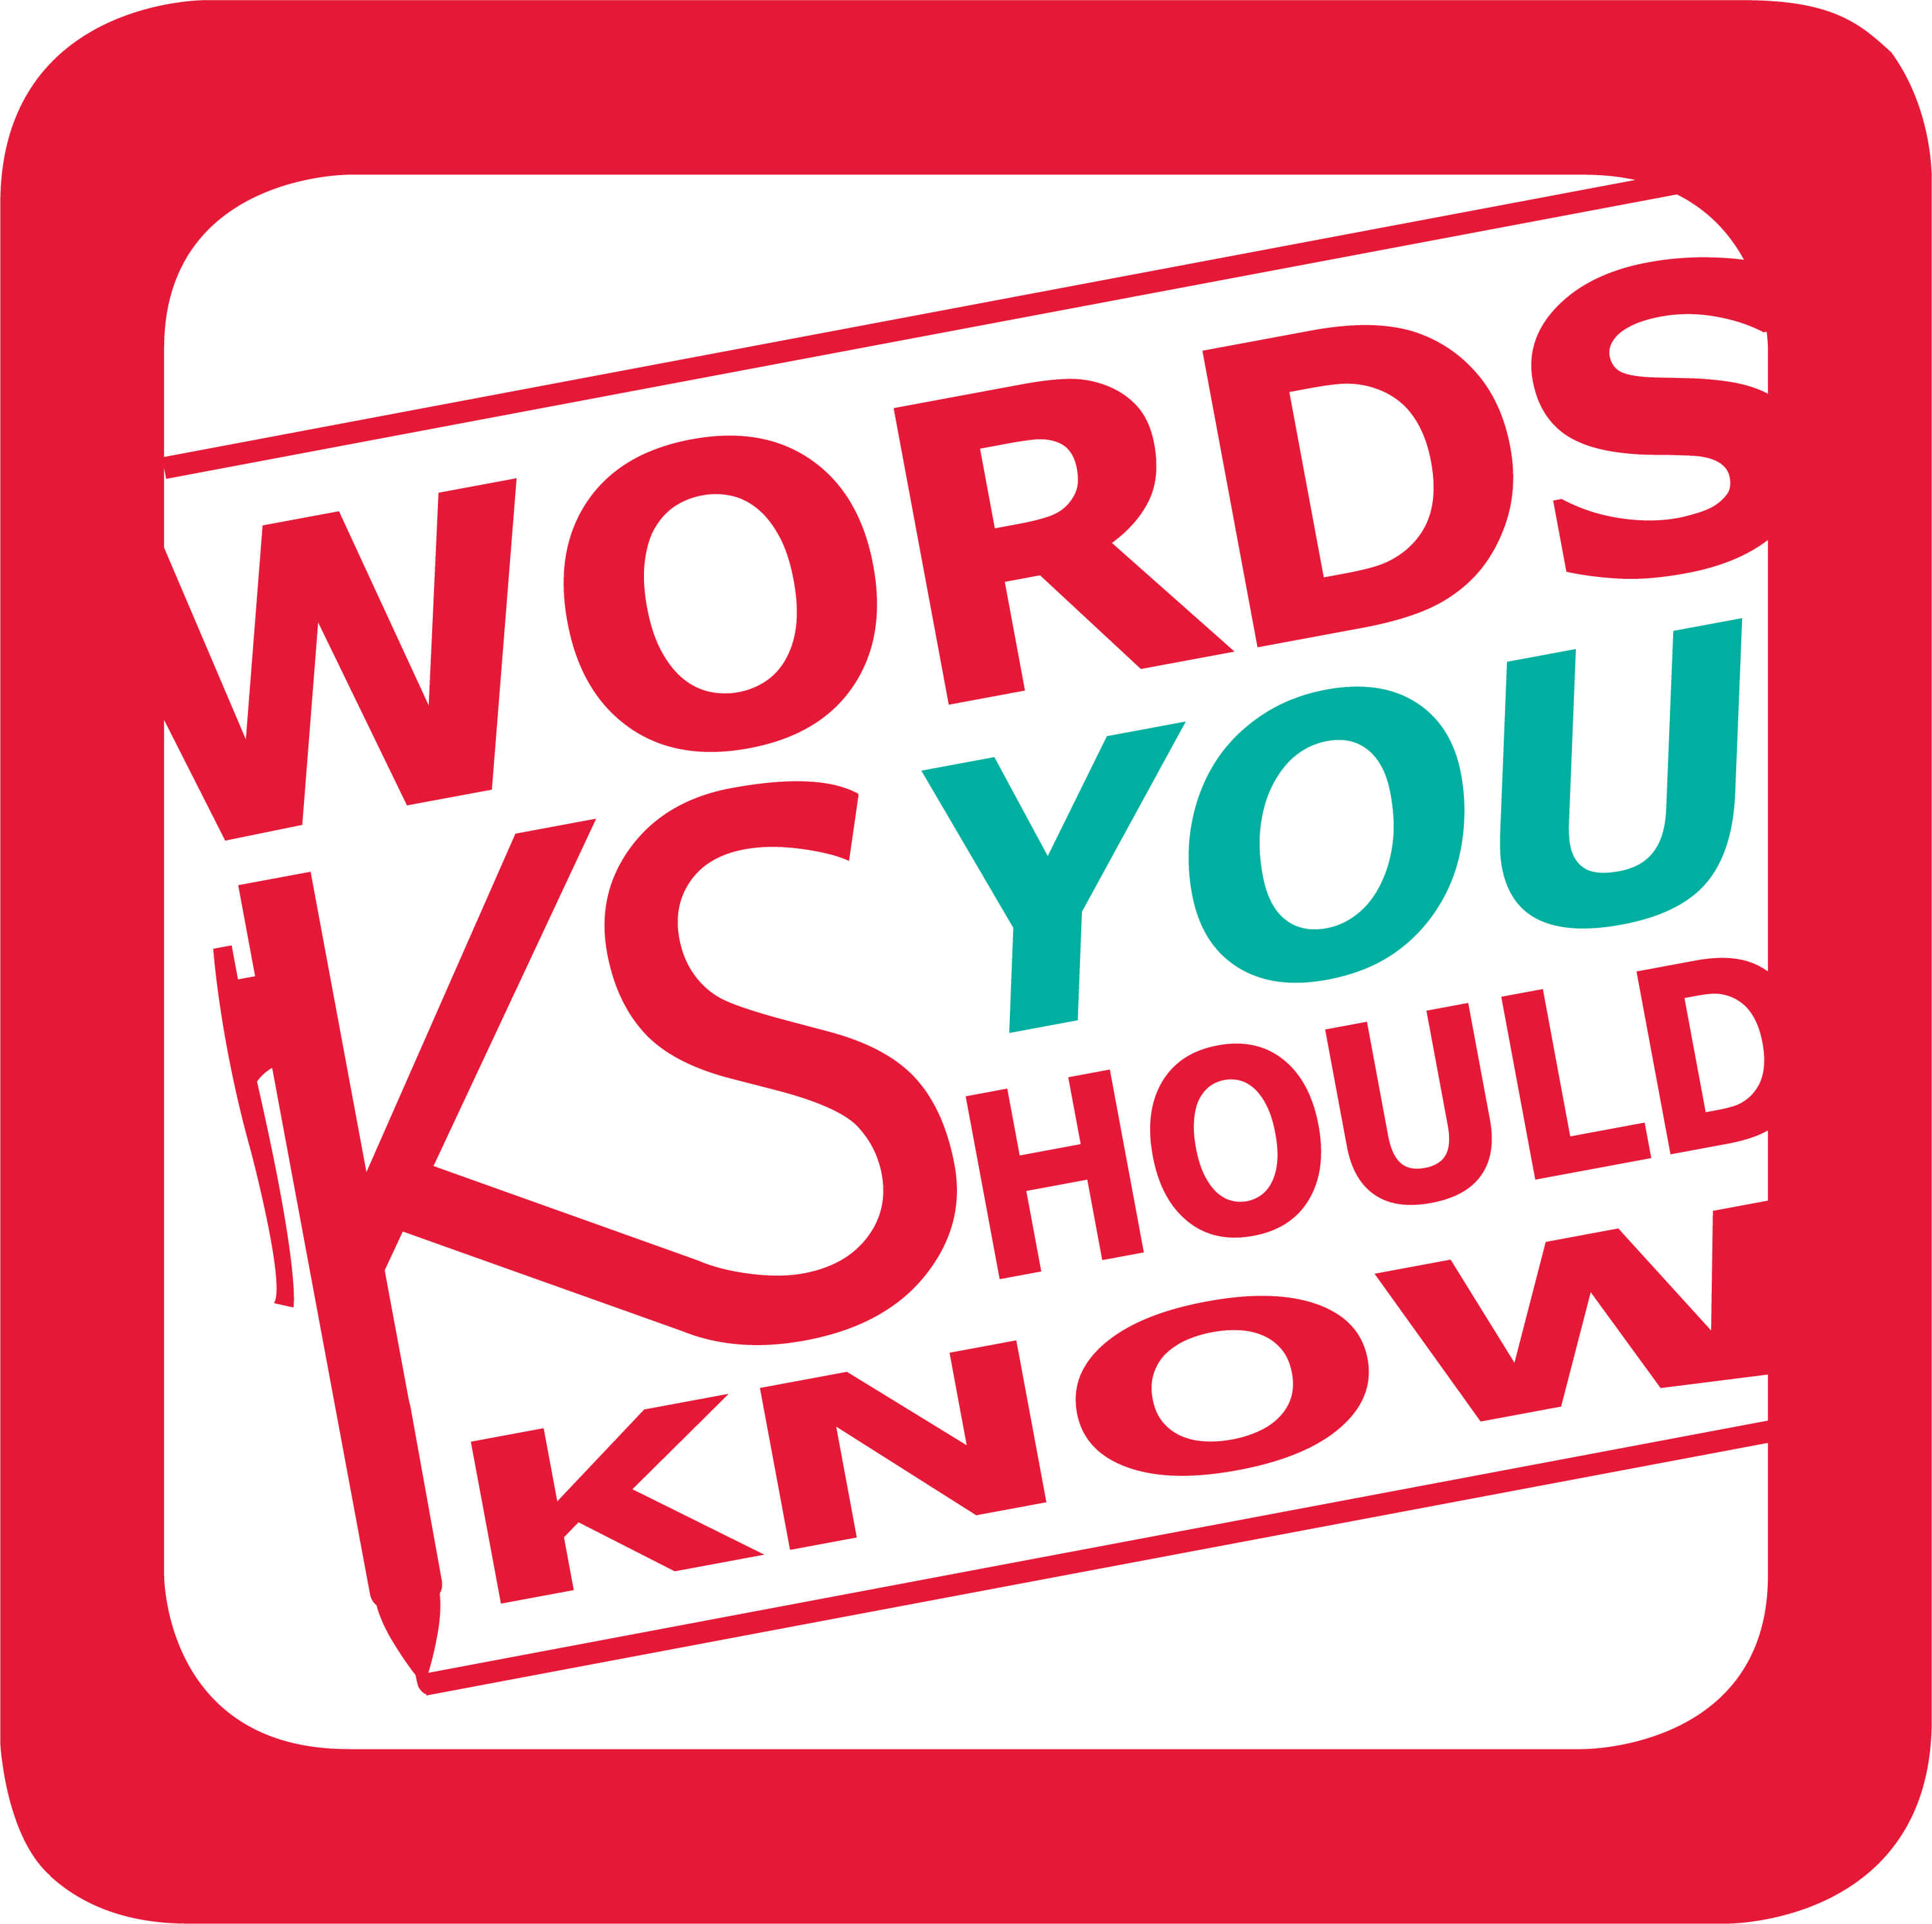 Words You Should Know podcast by Kris Spisak